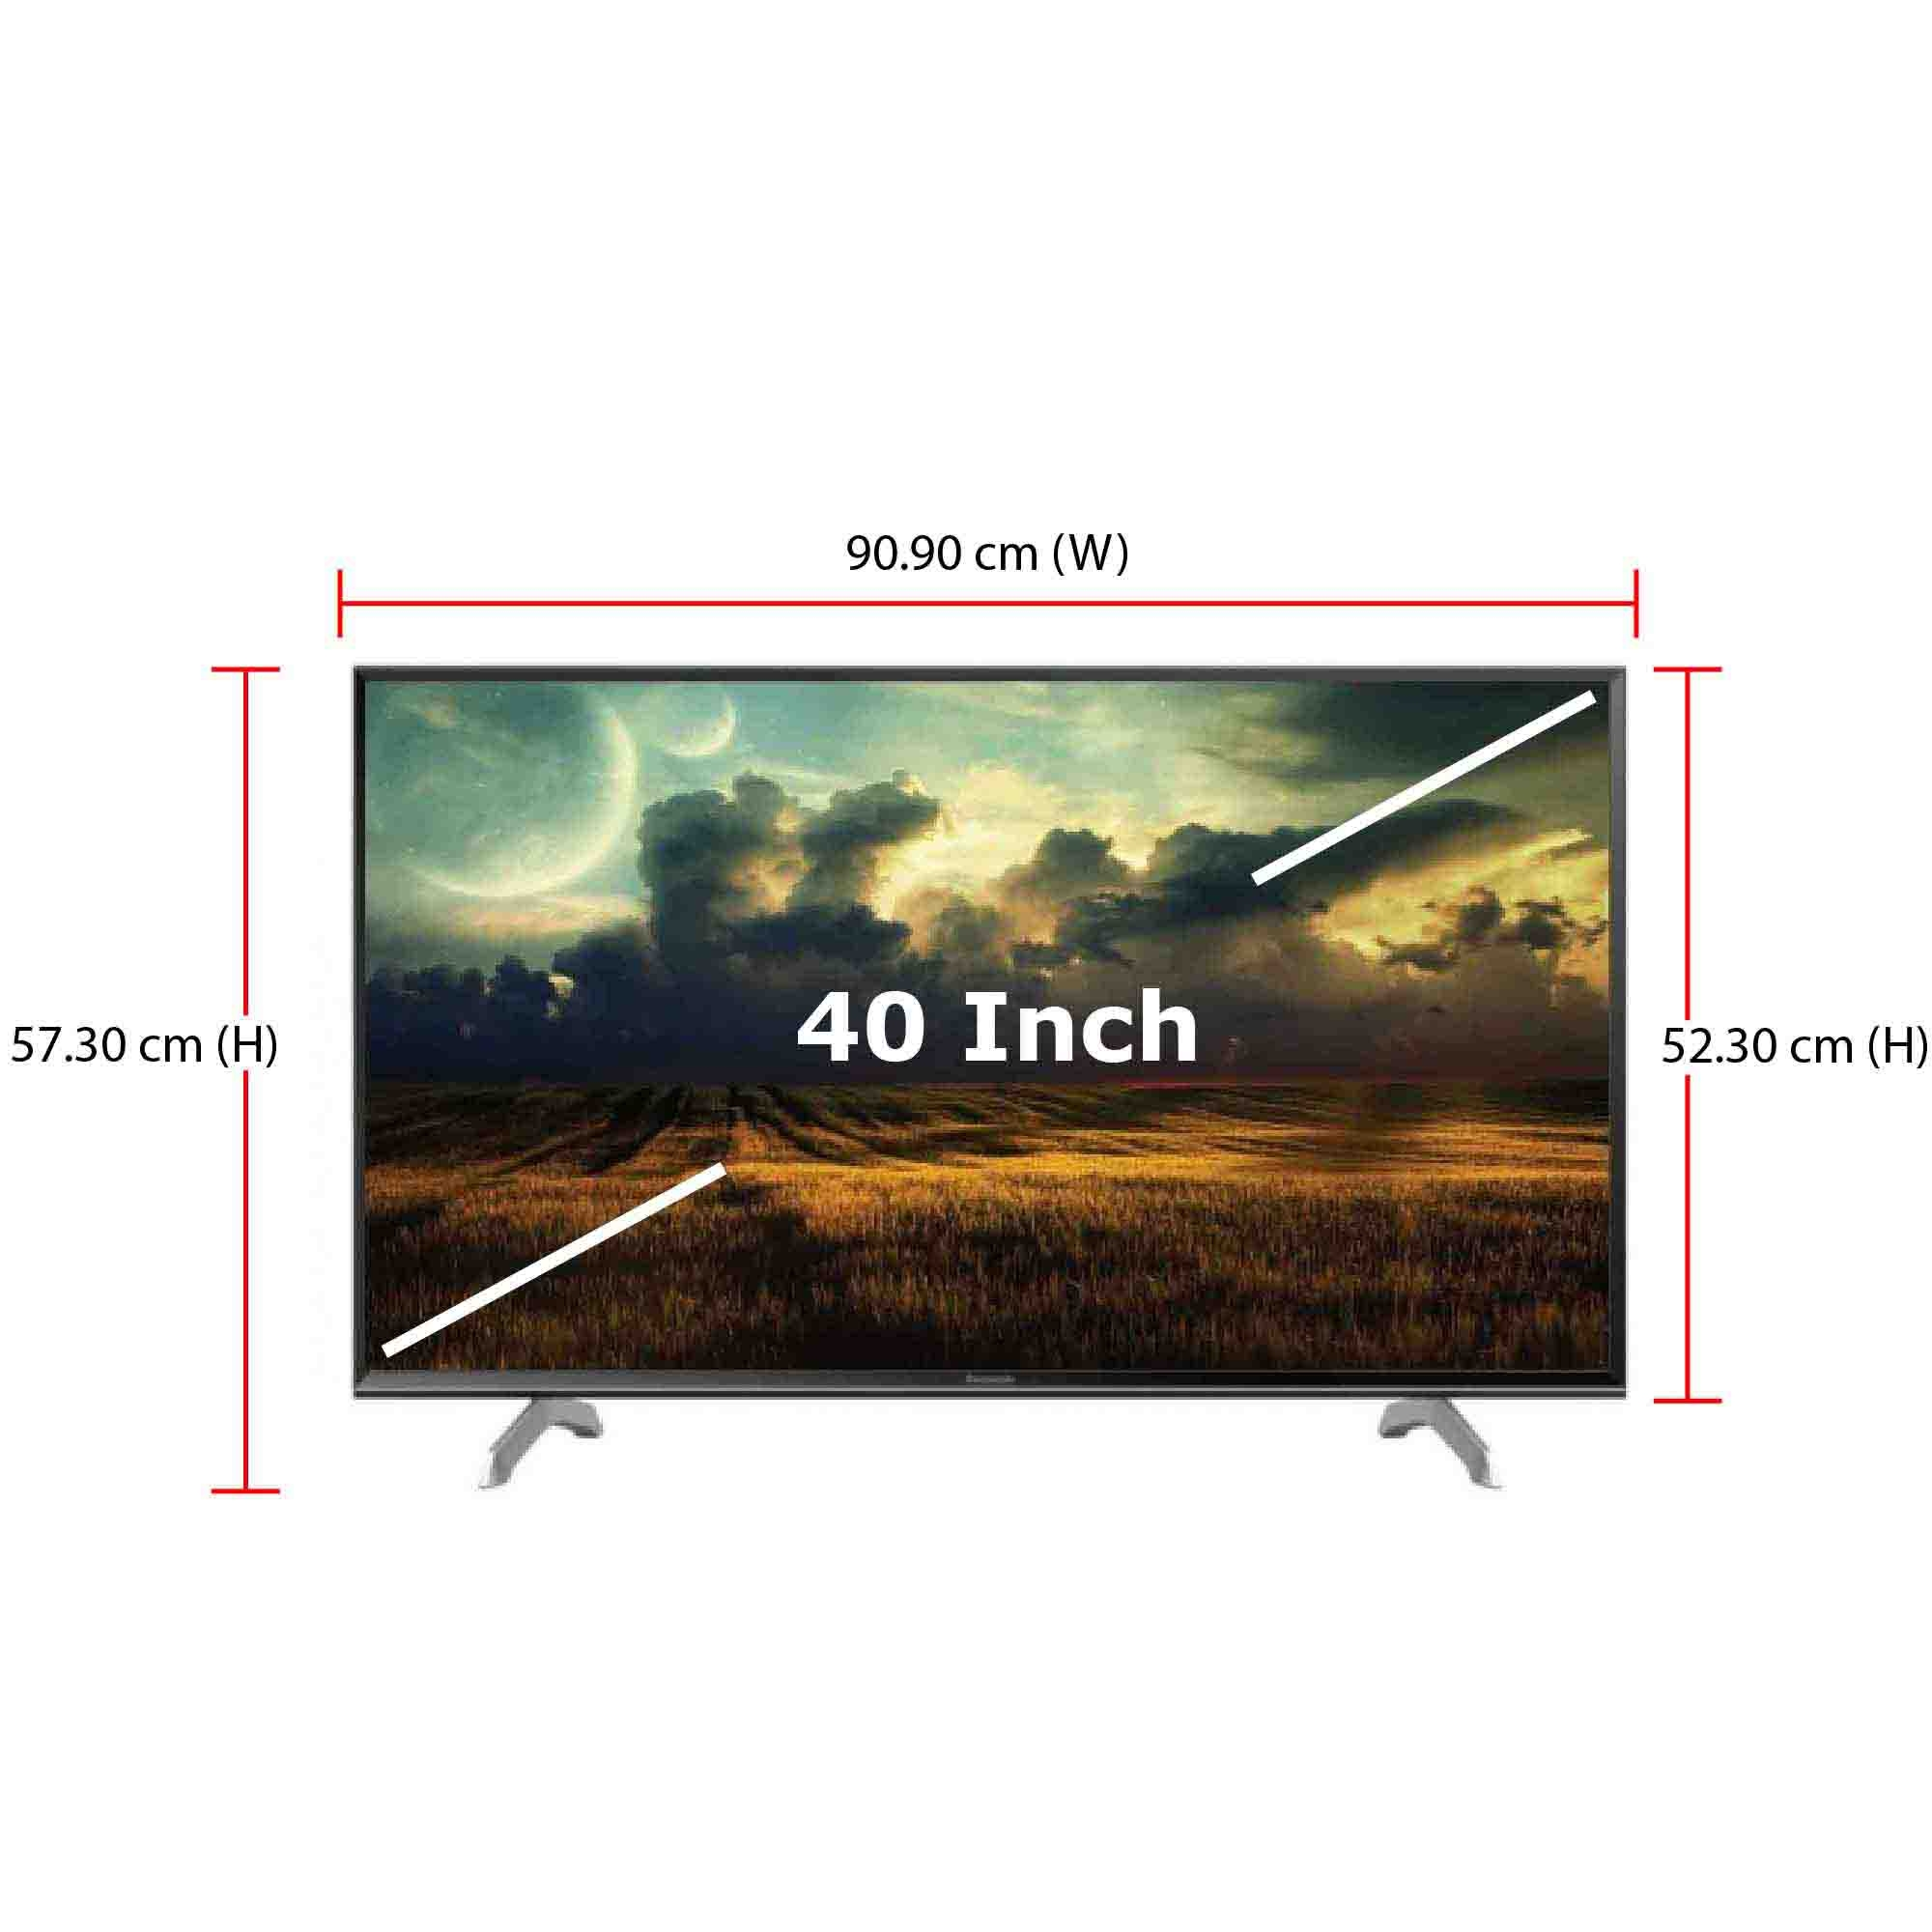 Panasonic TV 40-Inch Full HD Smart TV (2017 Model - TH-40ES501K) 3 x H